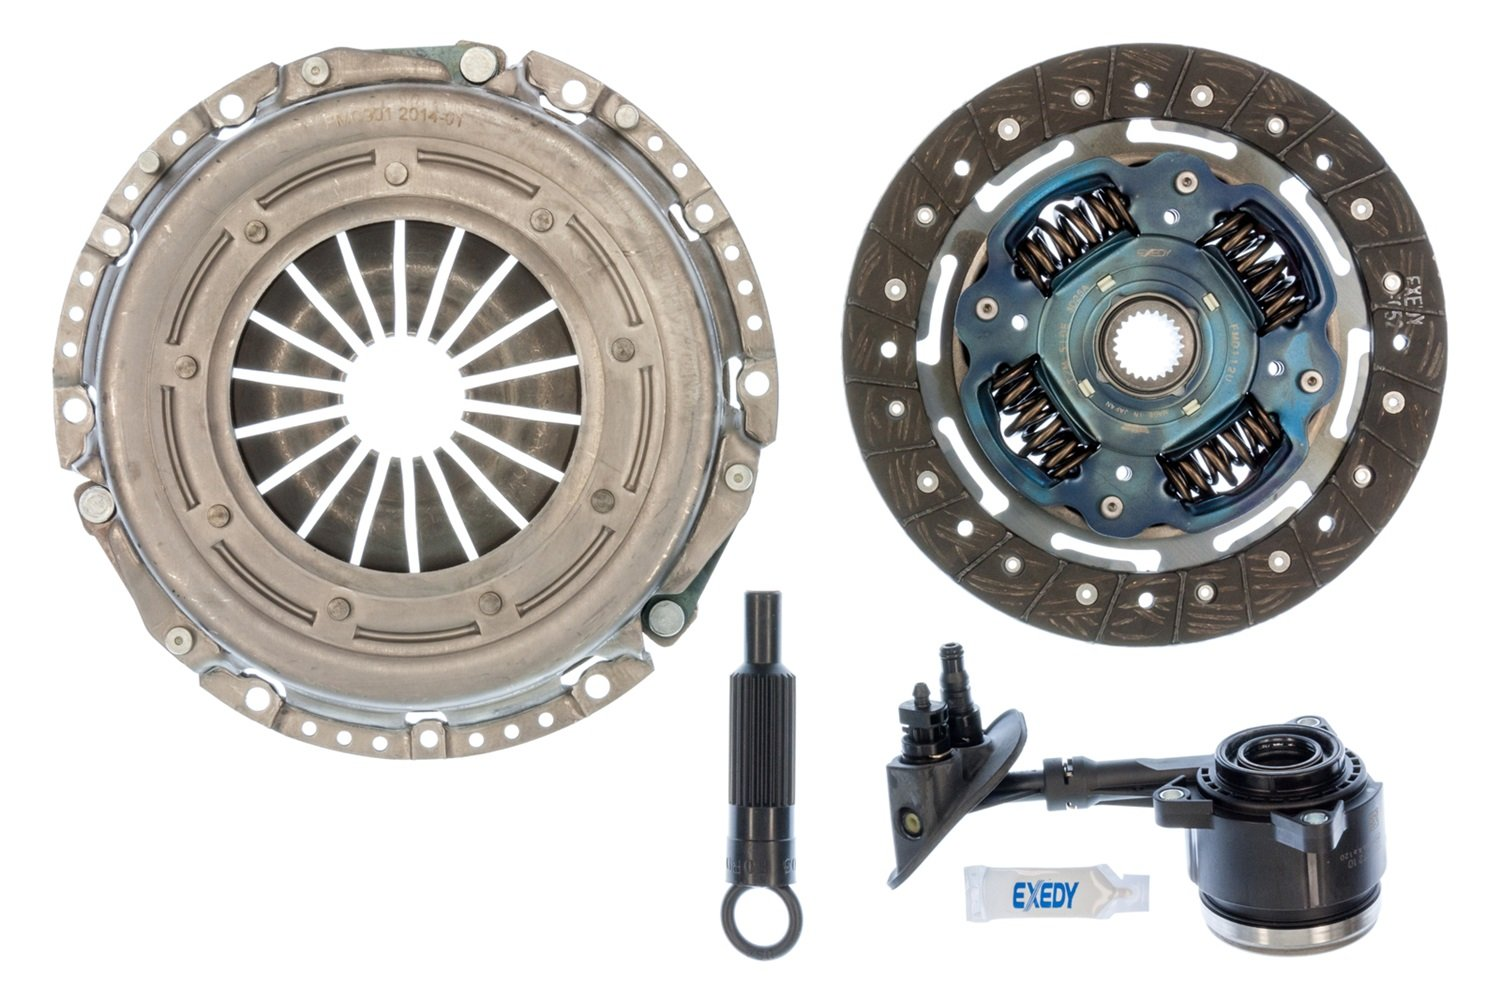 Exedy Kfm01 Oem Replacement Clutch Kit Automotive 2002 Ford Focus Timming Engine Mechanical Problem